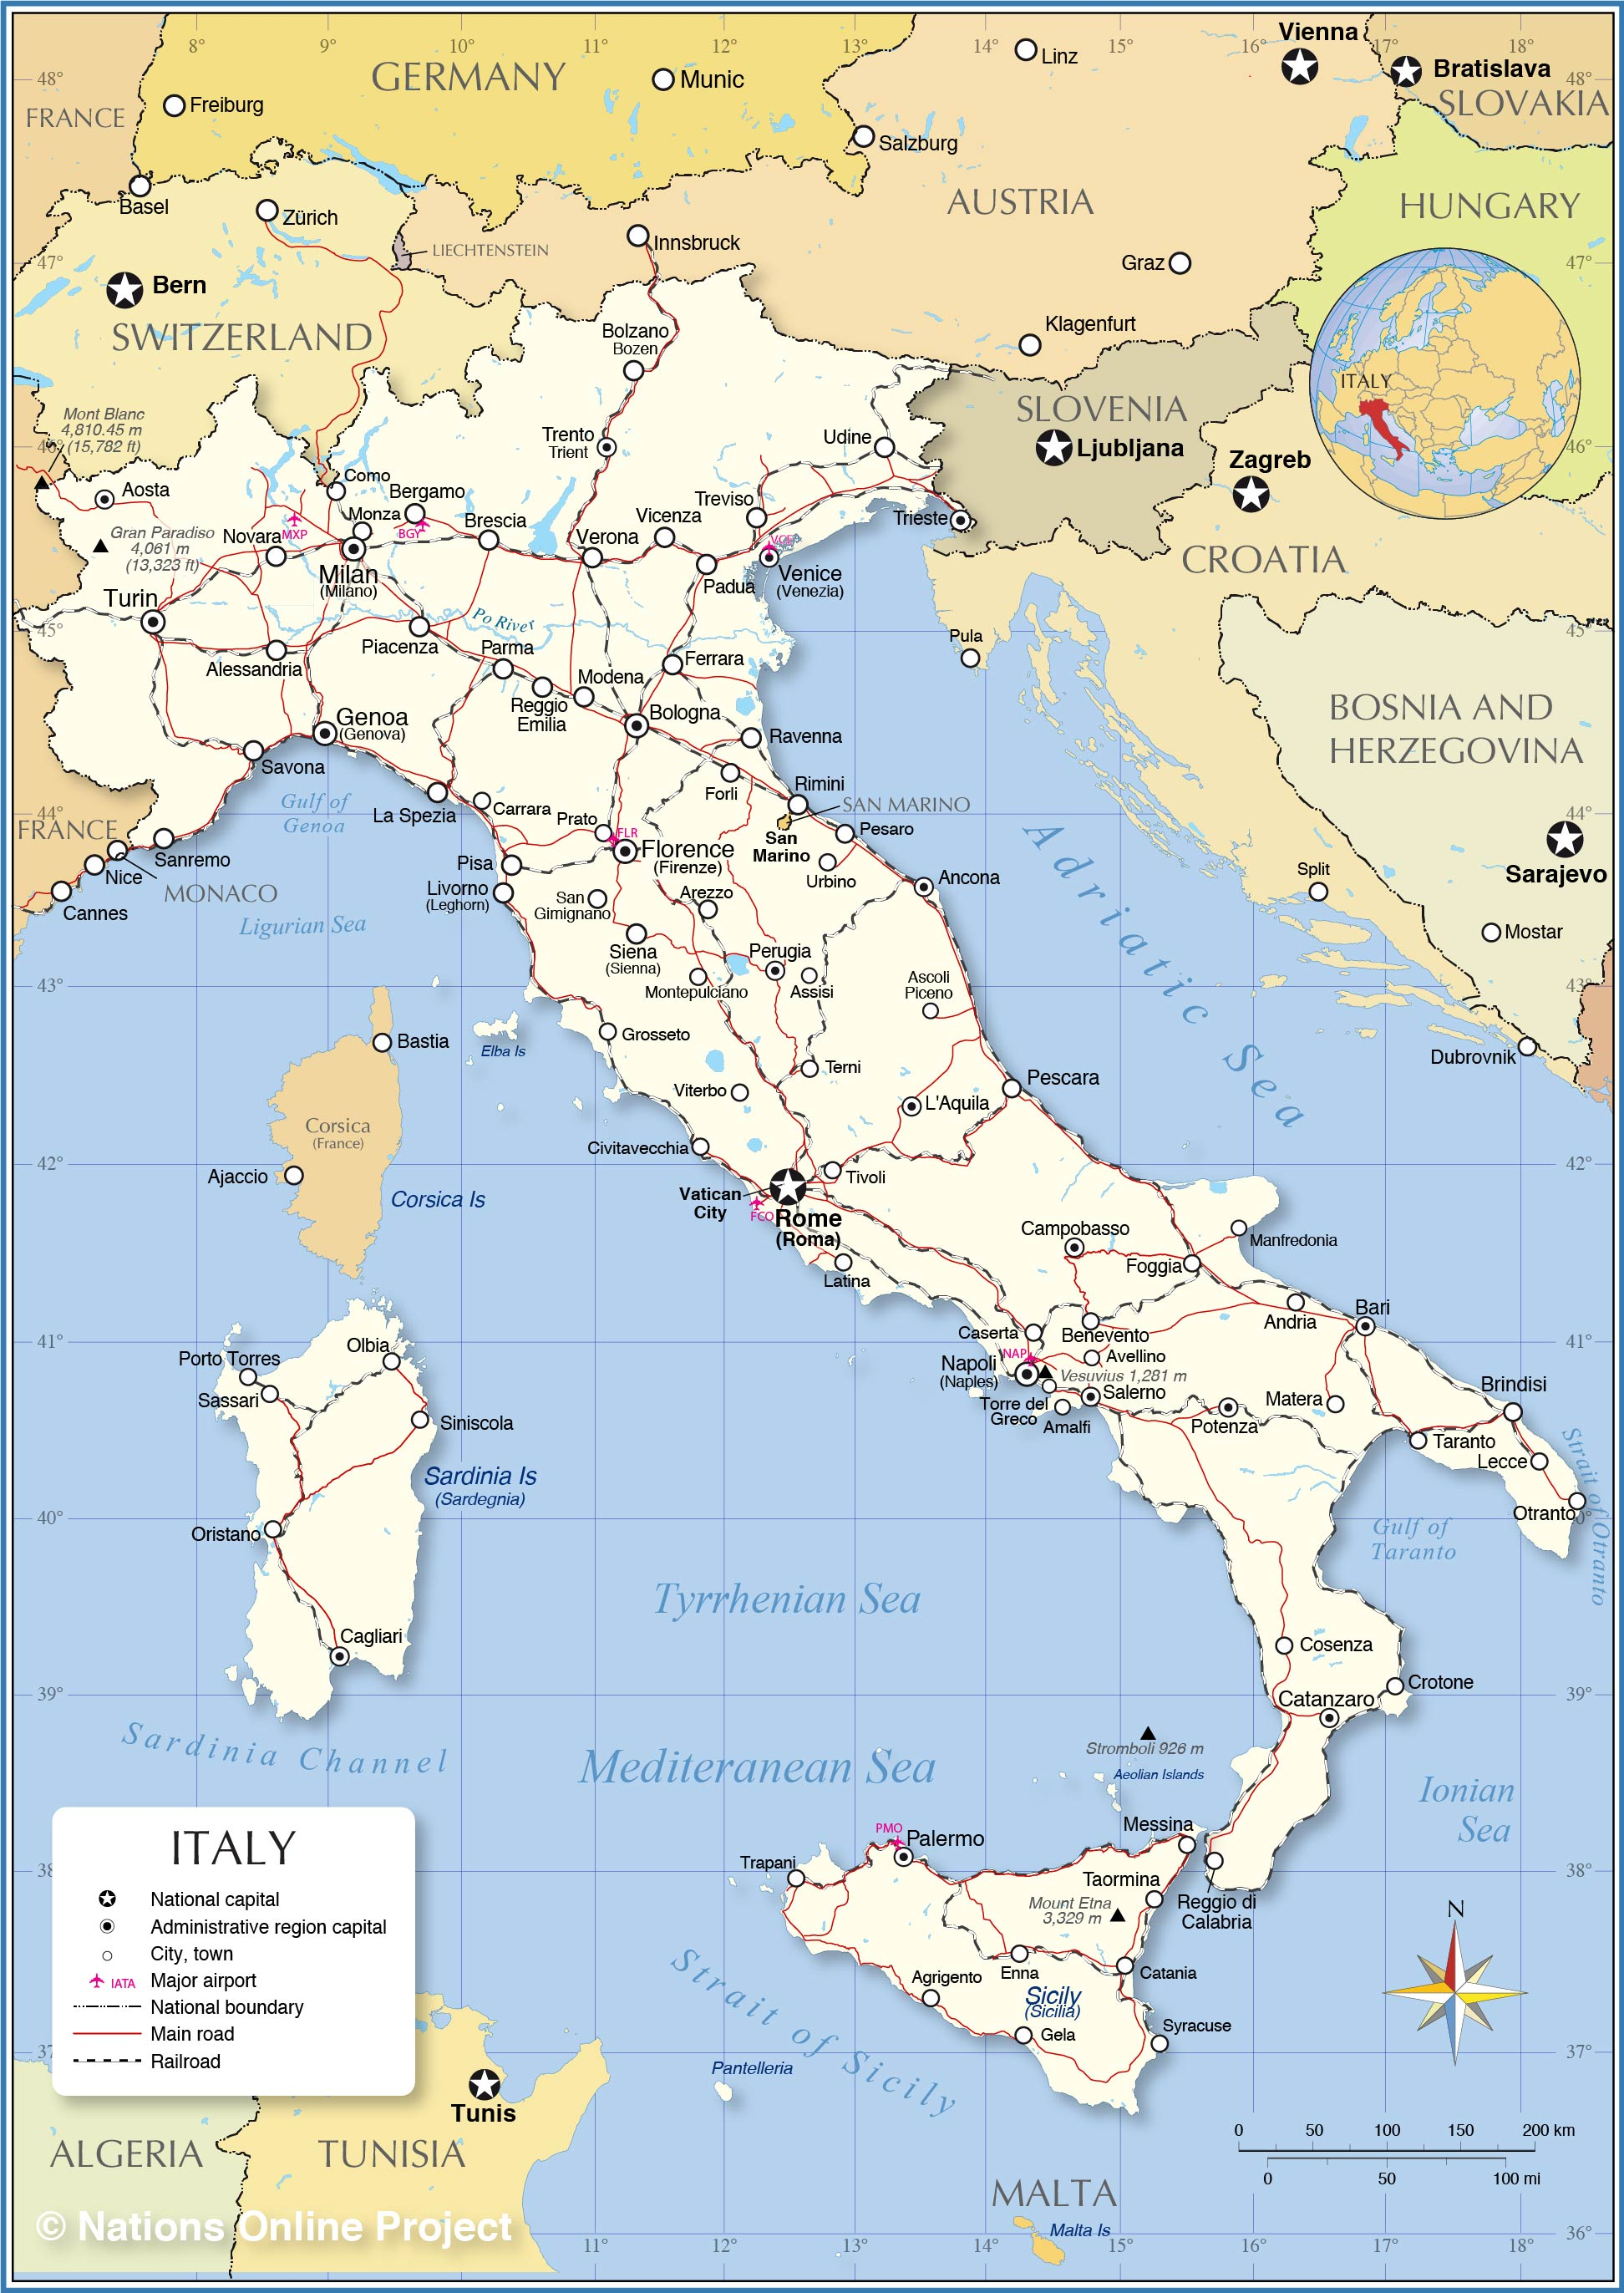 Worksheet. Political Map of Italy  Nations Online Project